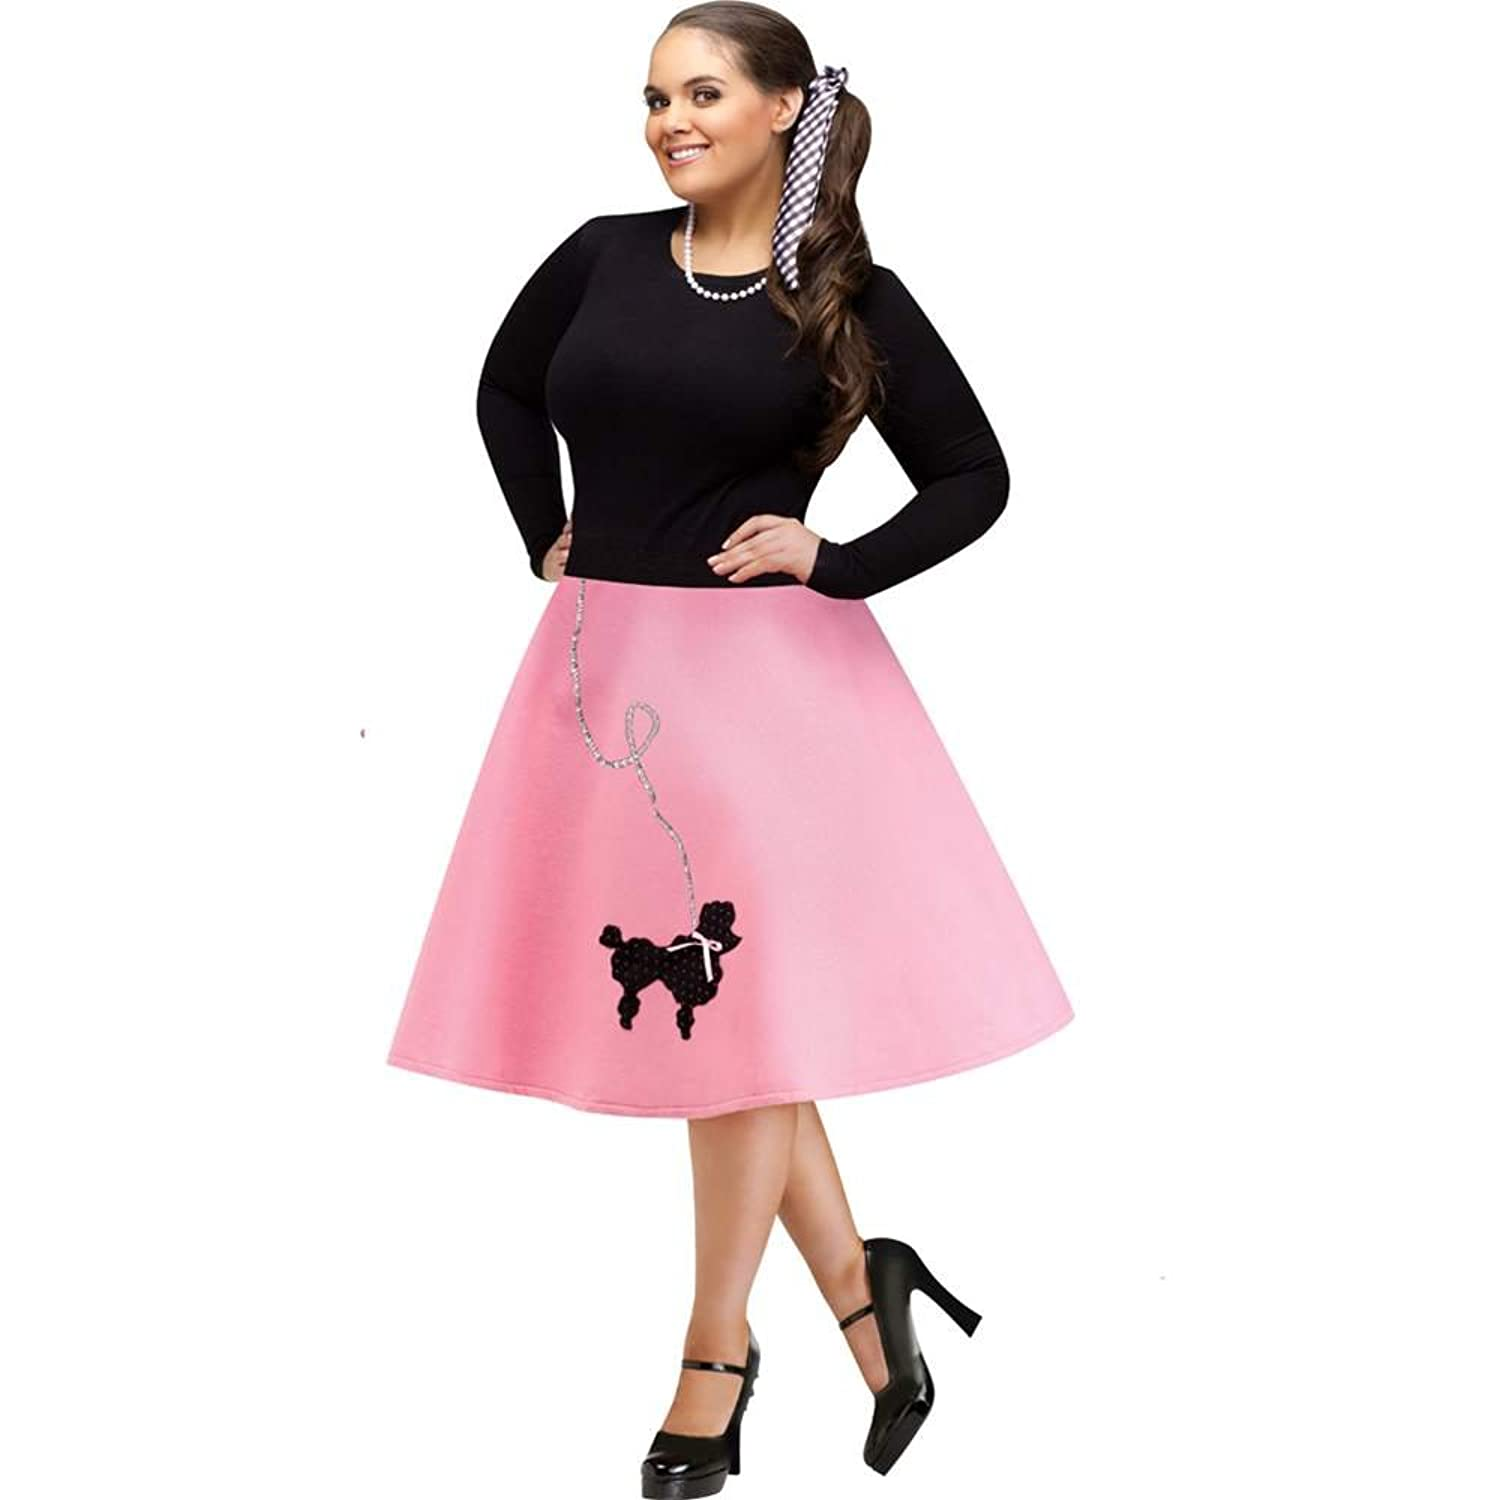 50s Skirt Styles | Poodle Skirts, Circle Skirts, Pencil Skirts FunWorld Plus-Size Poodle Skirt Costume $18.99 AT vintagedancer.com